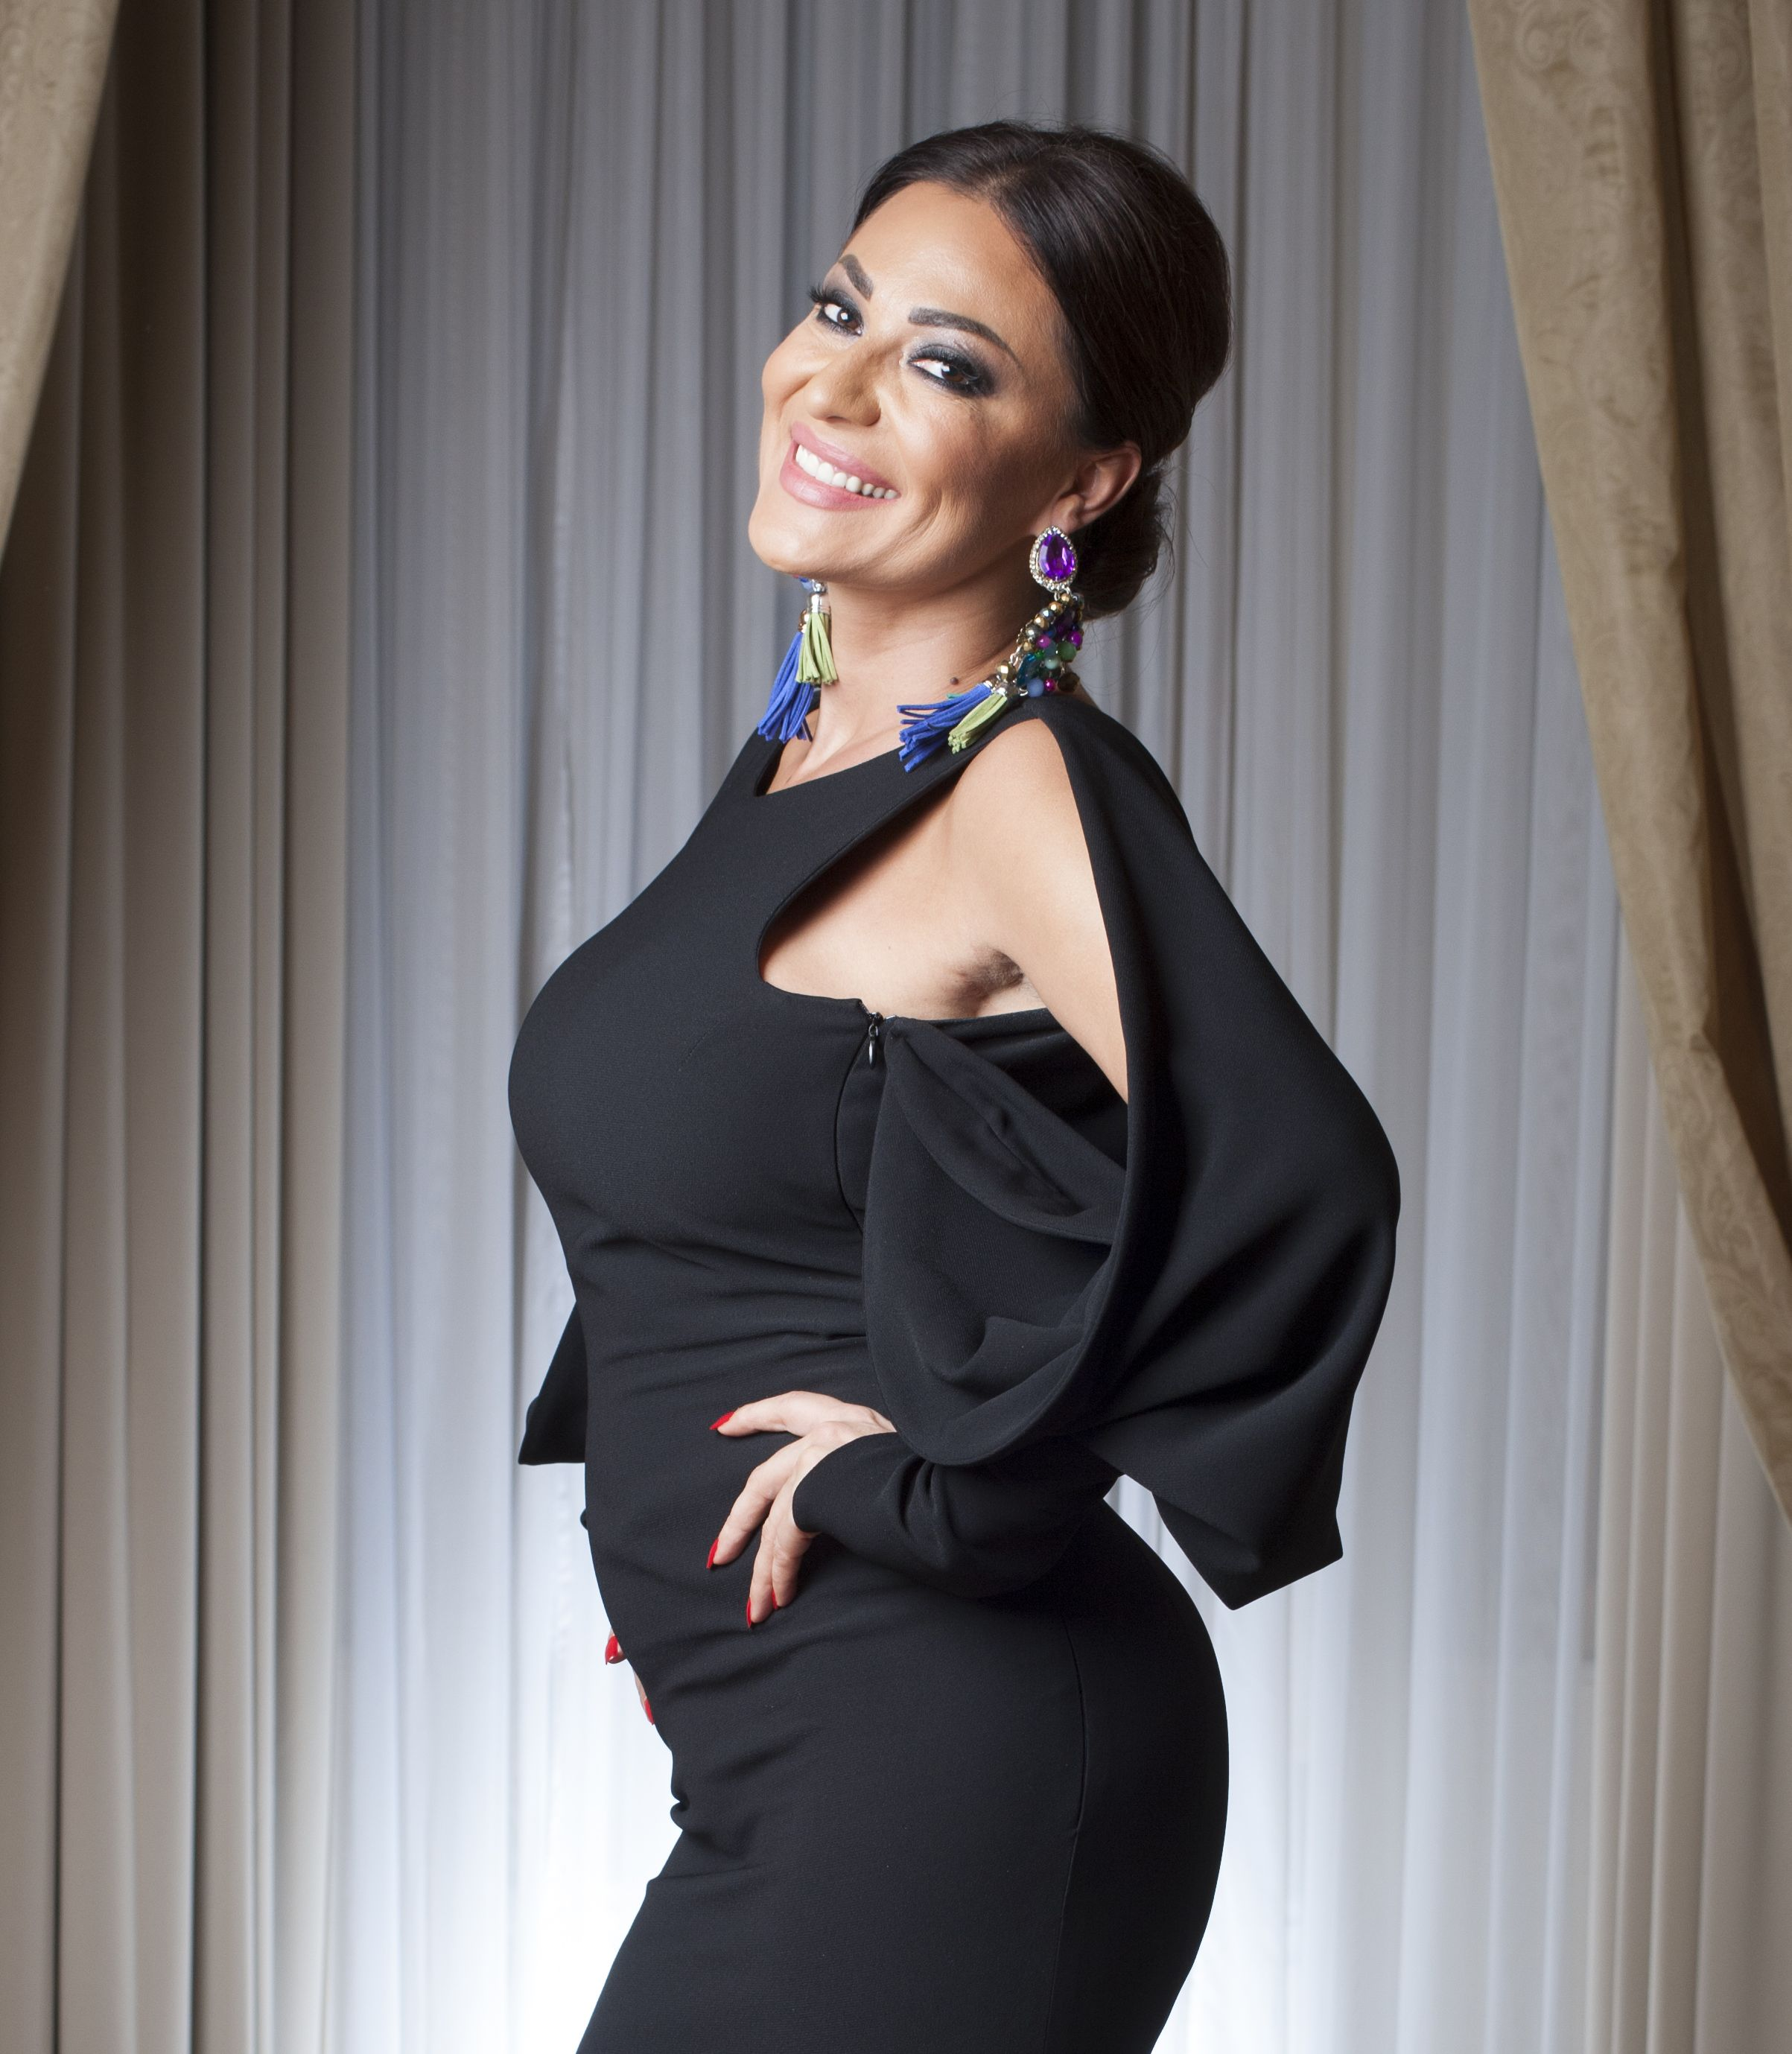 Ceca: Ceca Raznatovic Pics And Logo Photos And Images Of Ceca